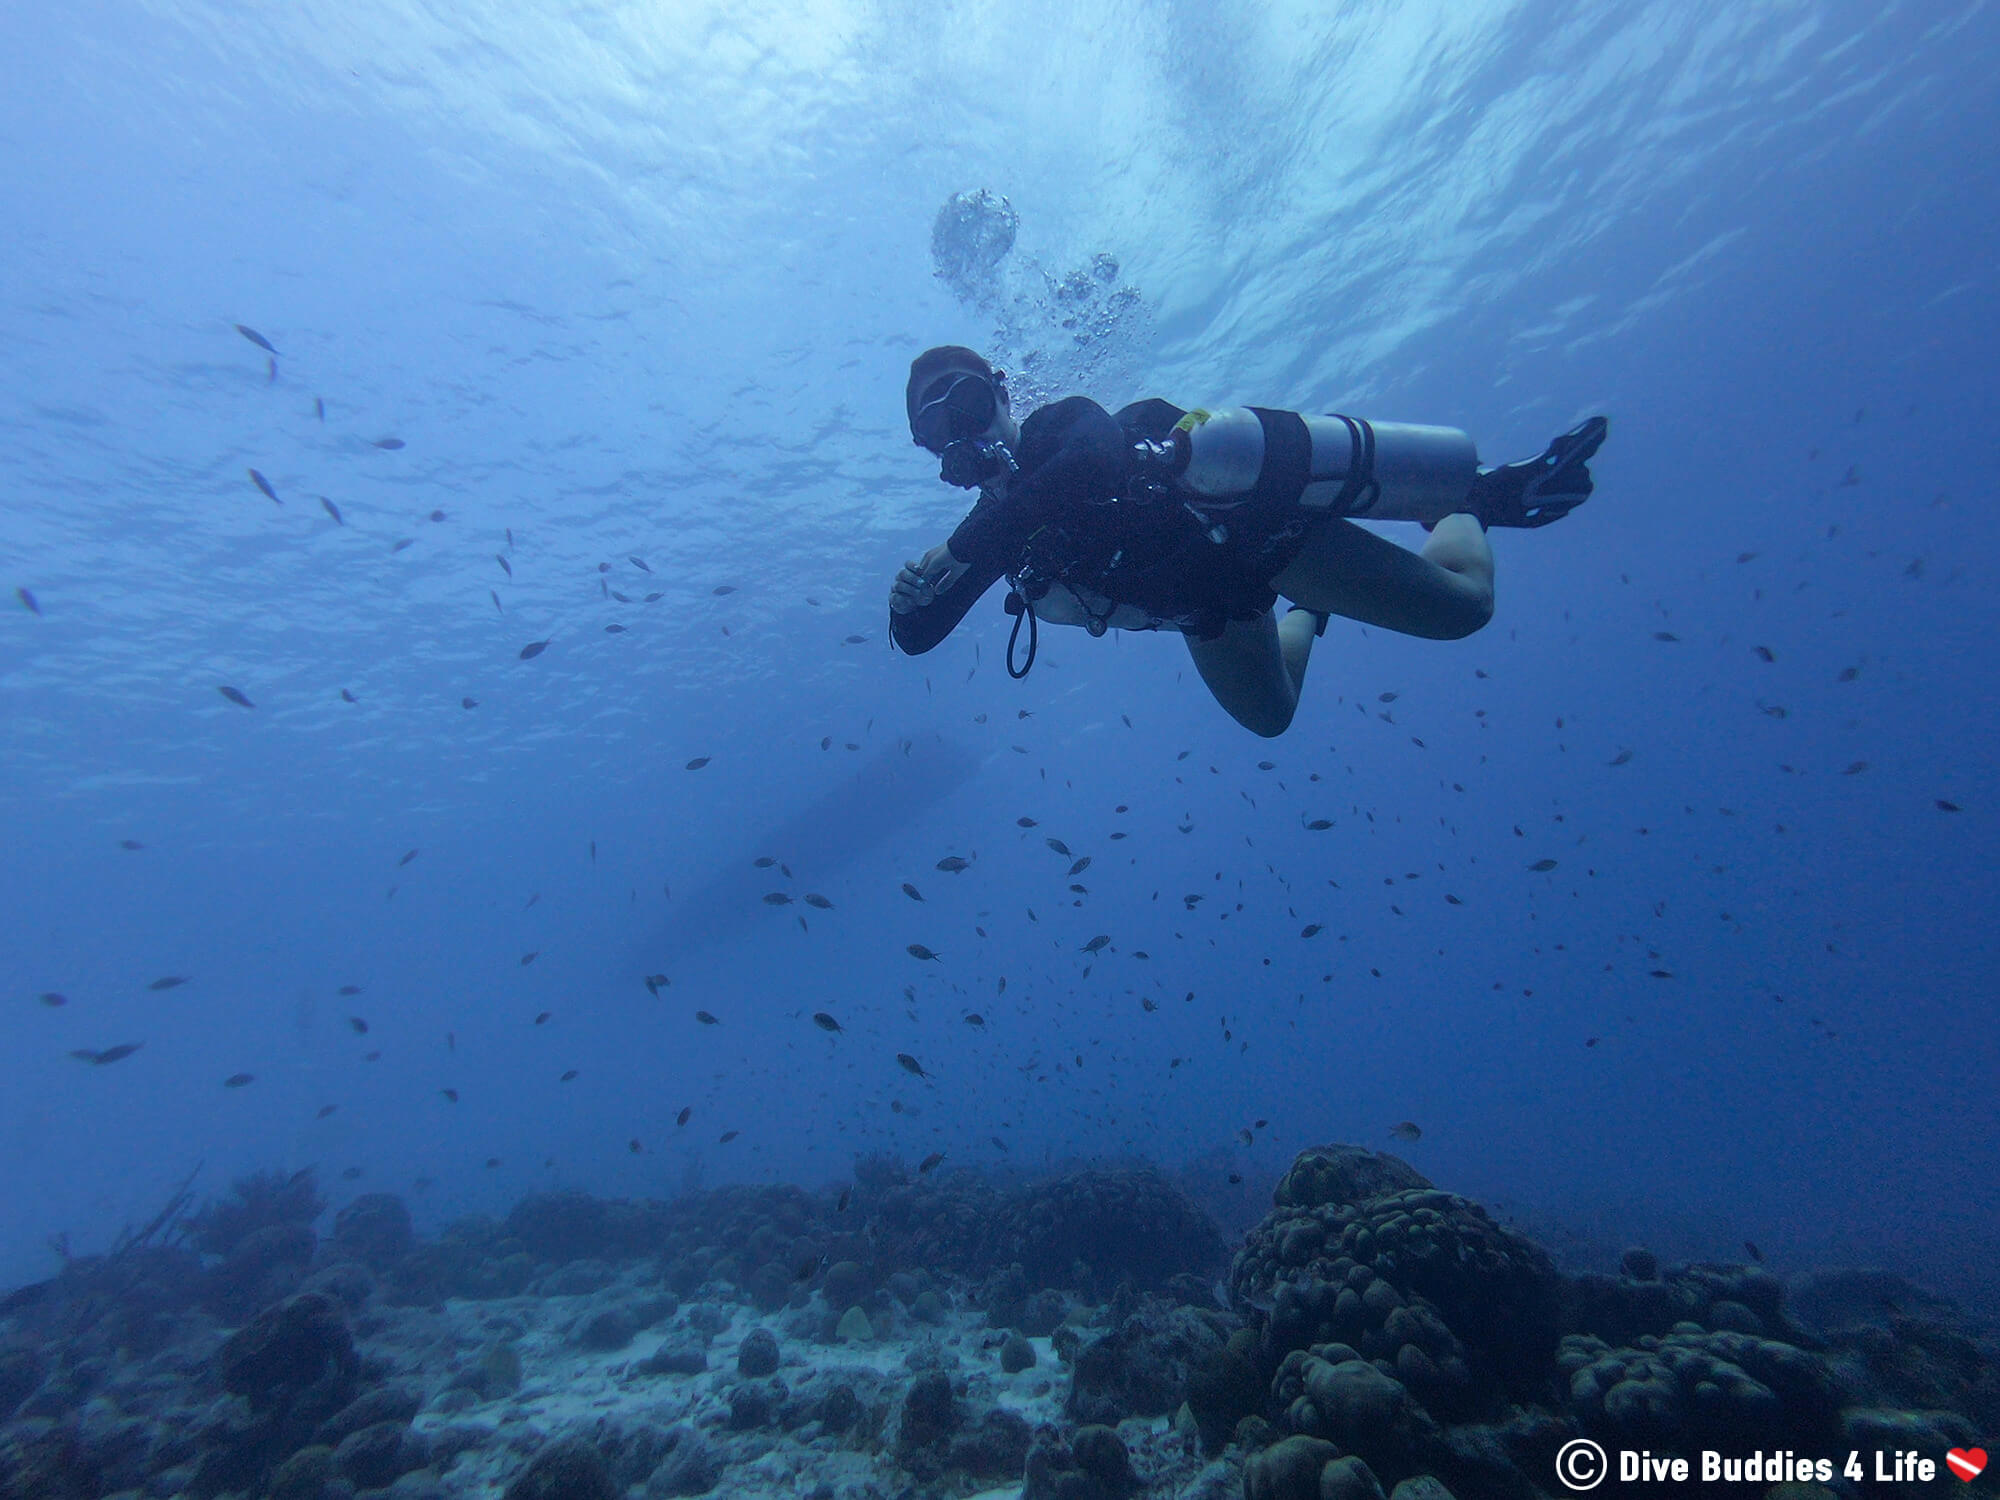 Ali On Buddy Dive's Coral Reef With Sidemount Gear During Bonaire TeK Week, Dutch Caribbean